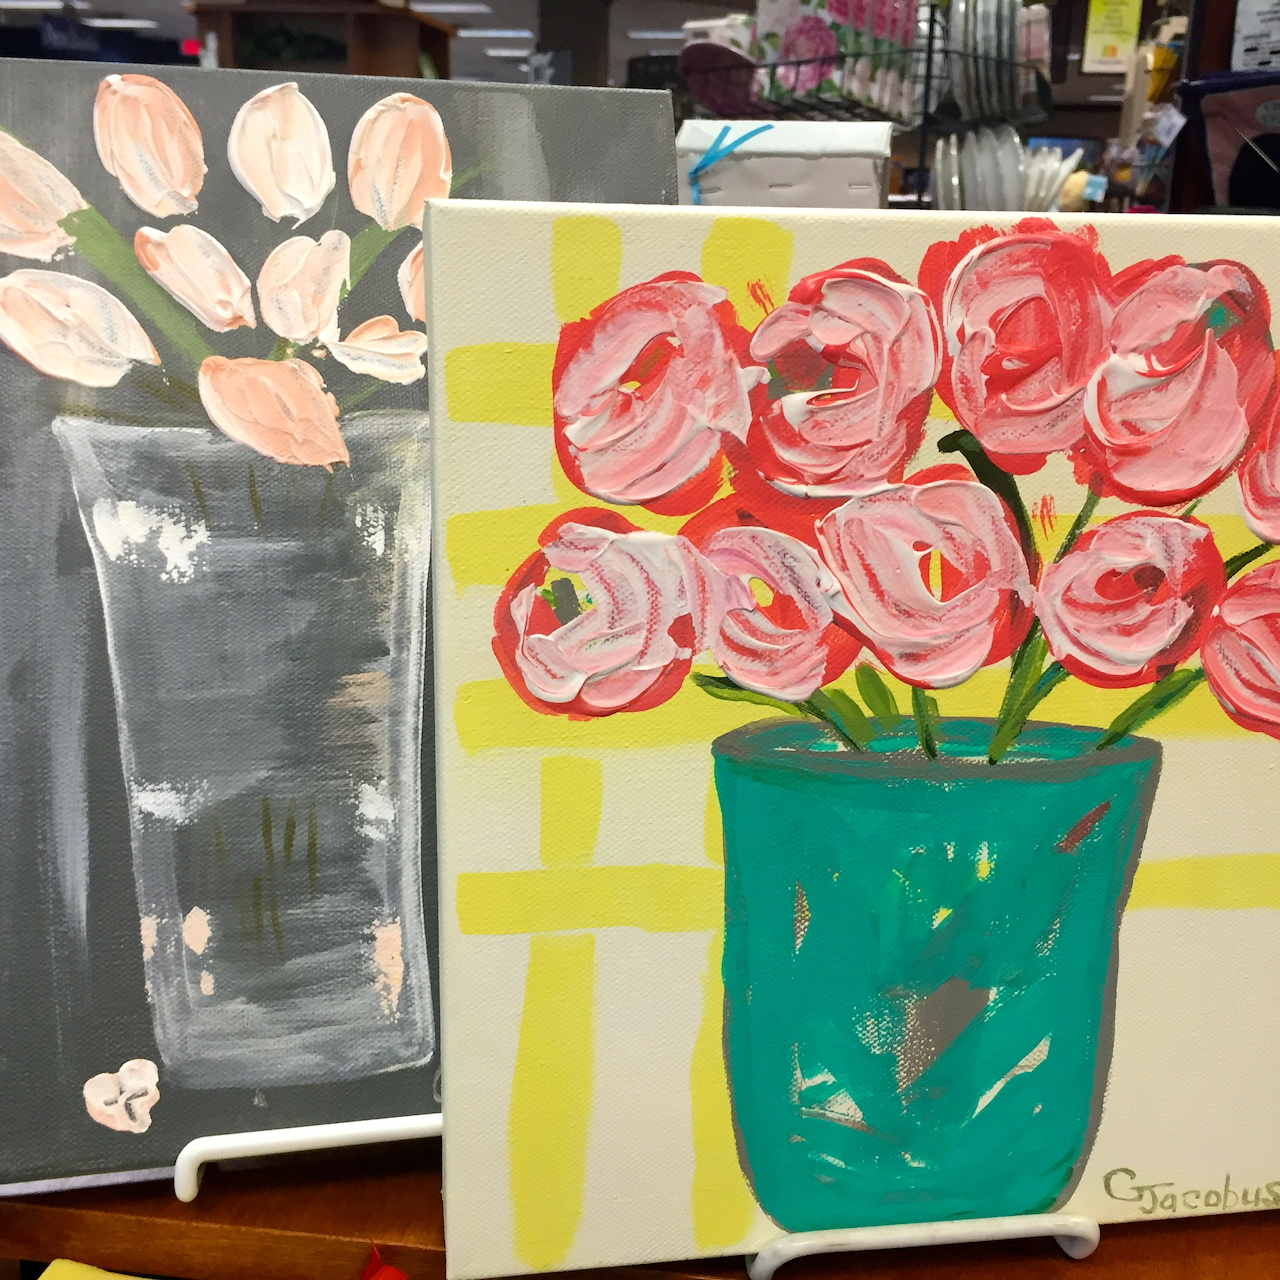 9-by-12-inch painting of pink tulips, $30; 10-inch square multi-colored bunch, $49, from Booksellers at Laurelwood